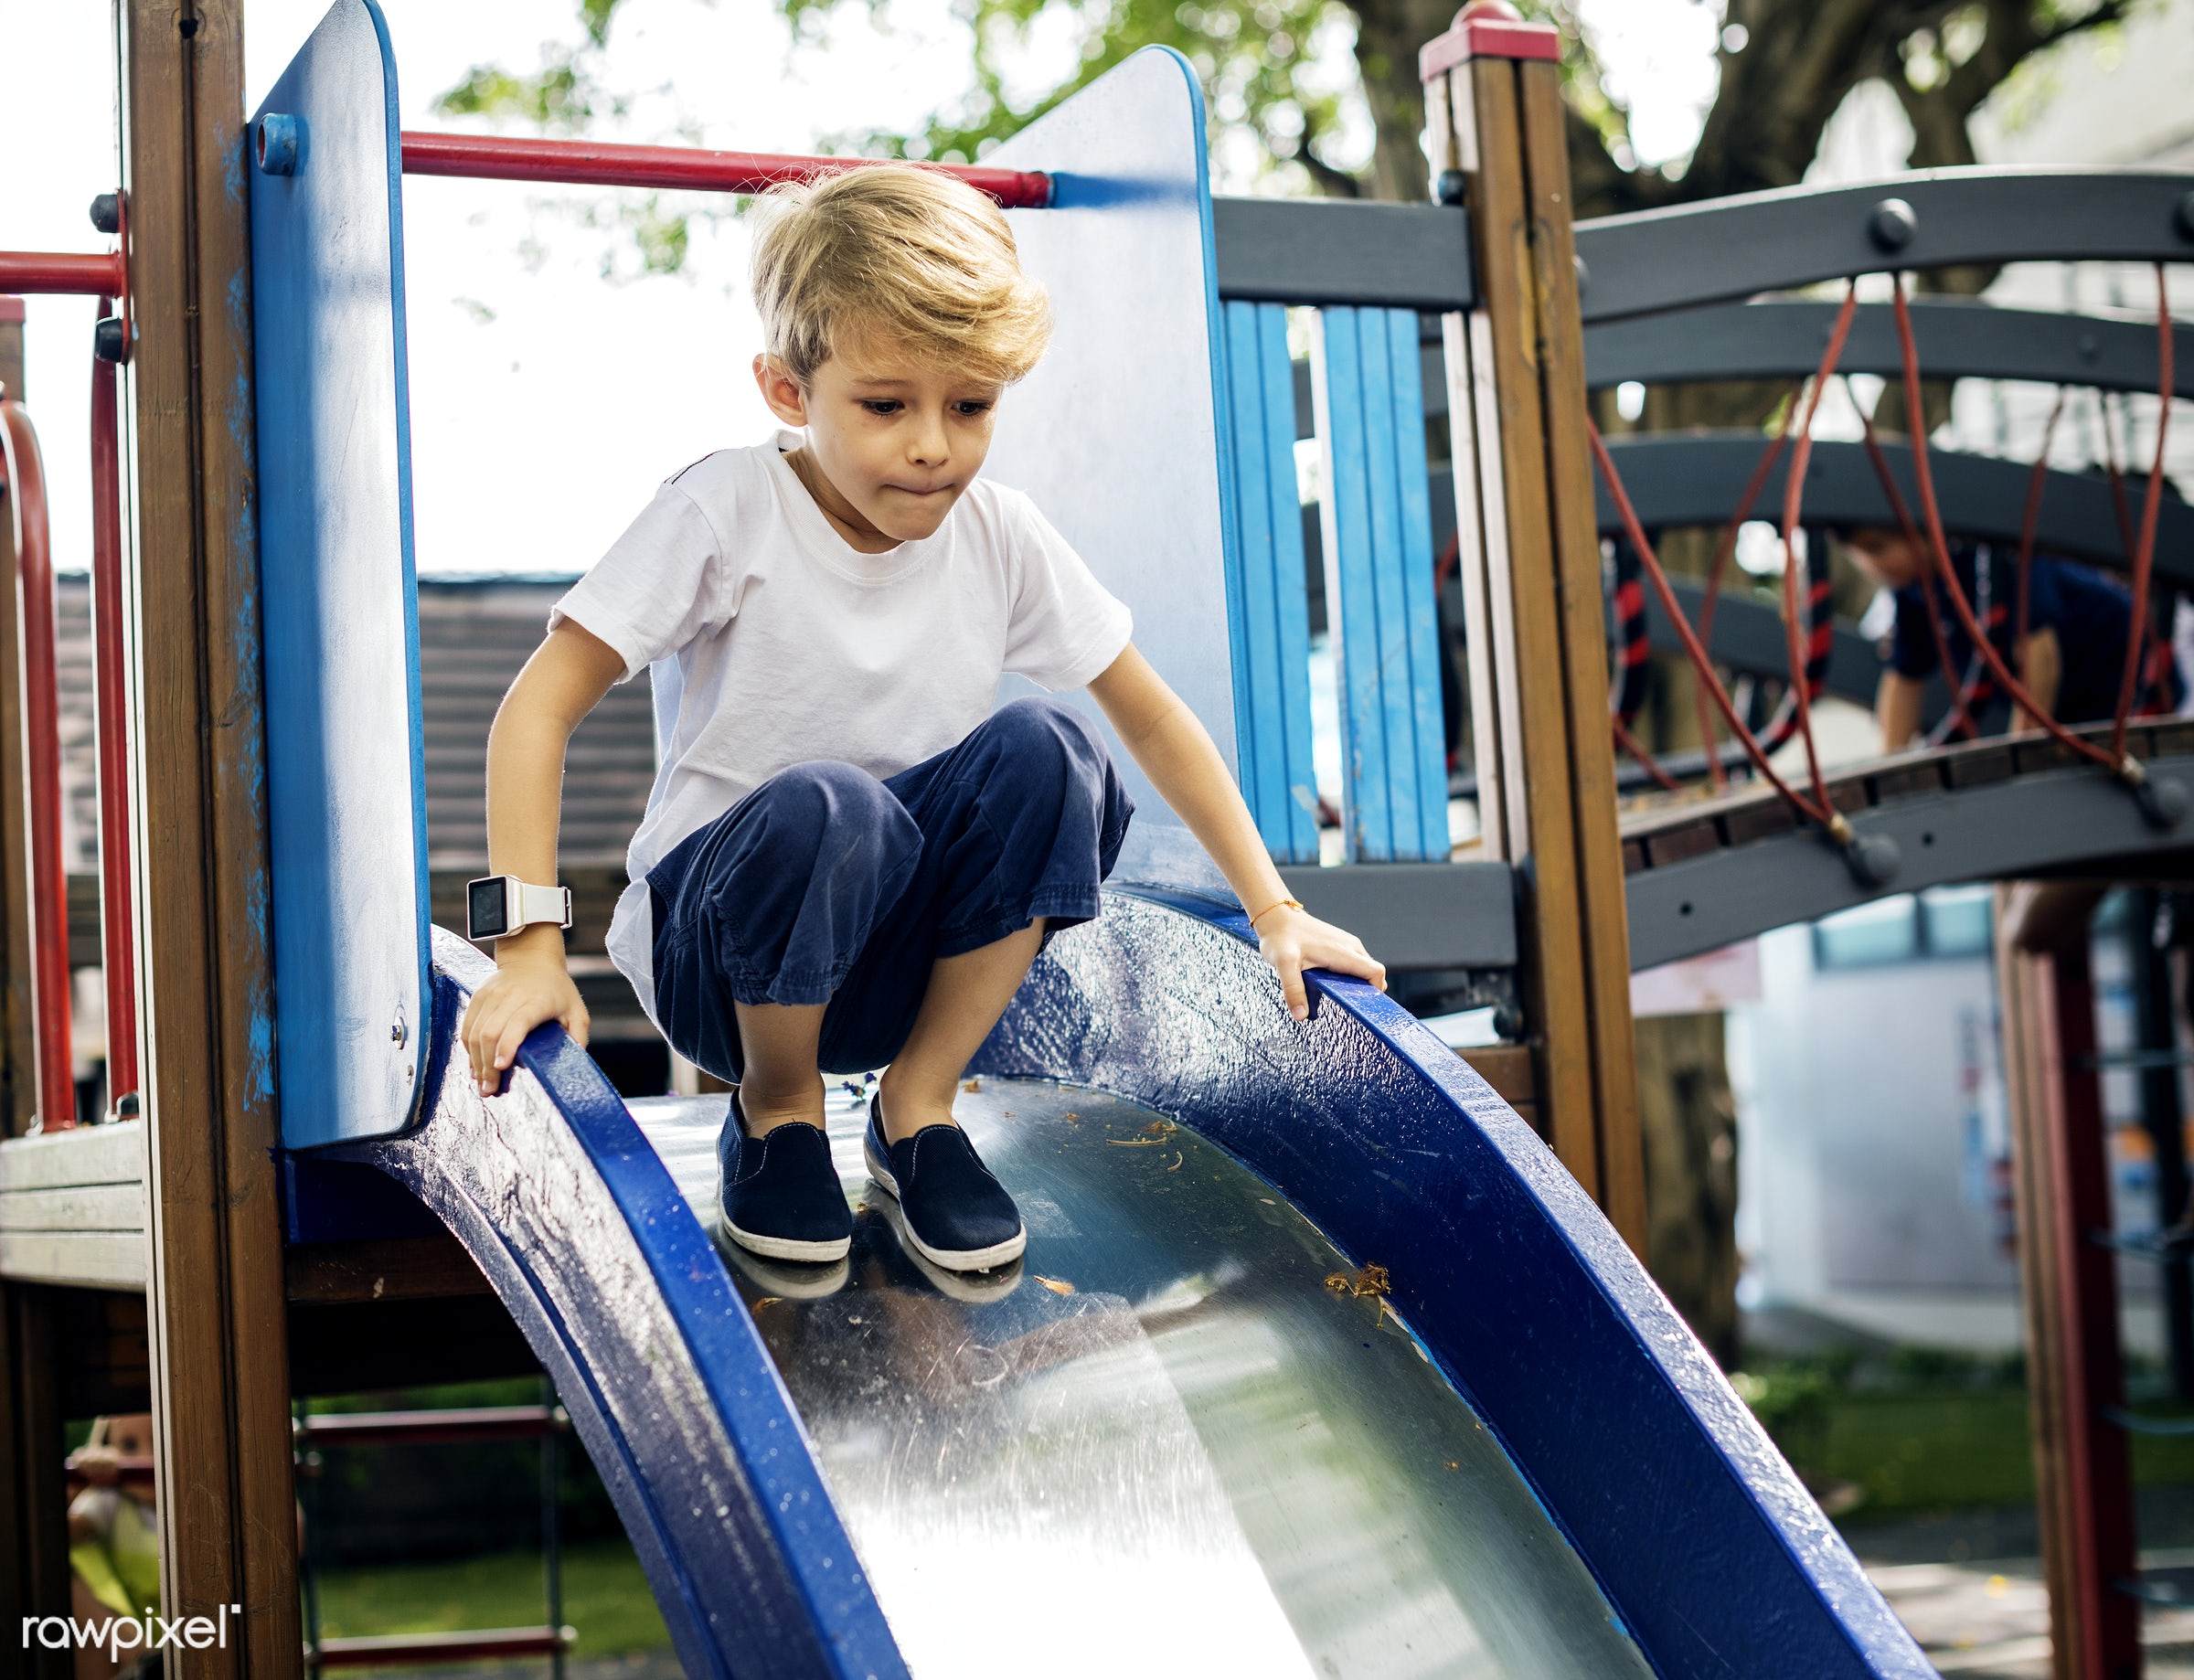 boy playing at a playground - playground, park, leisure, young, kid, caucasian, child, playing, blonde, recreational, casual...